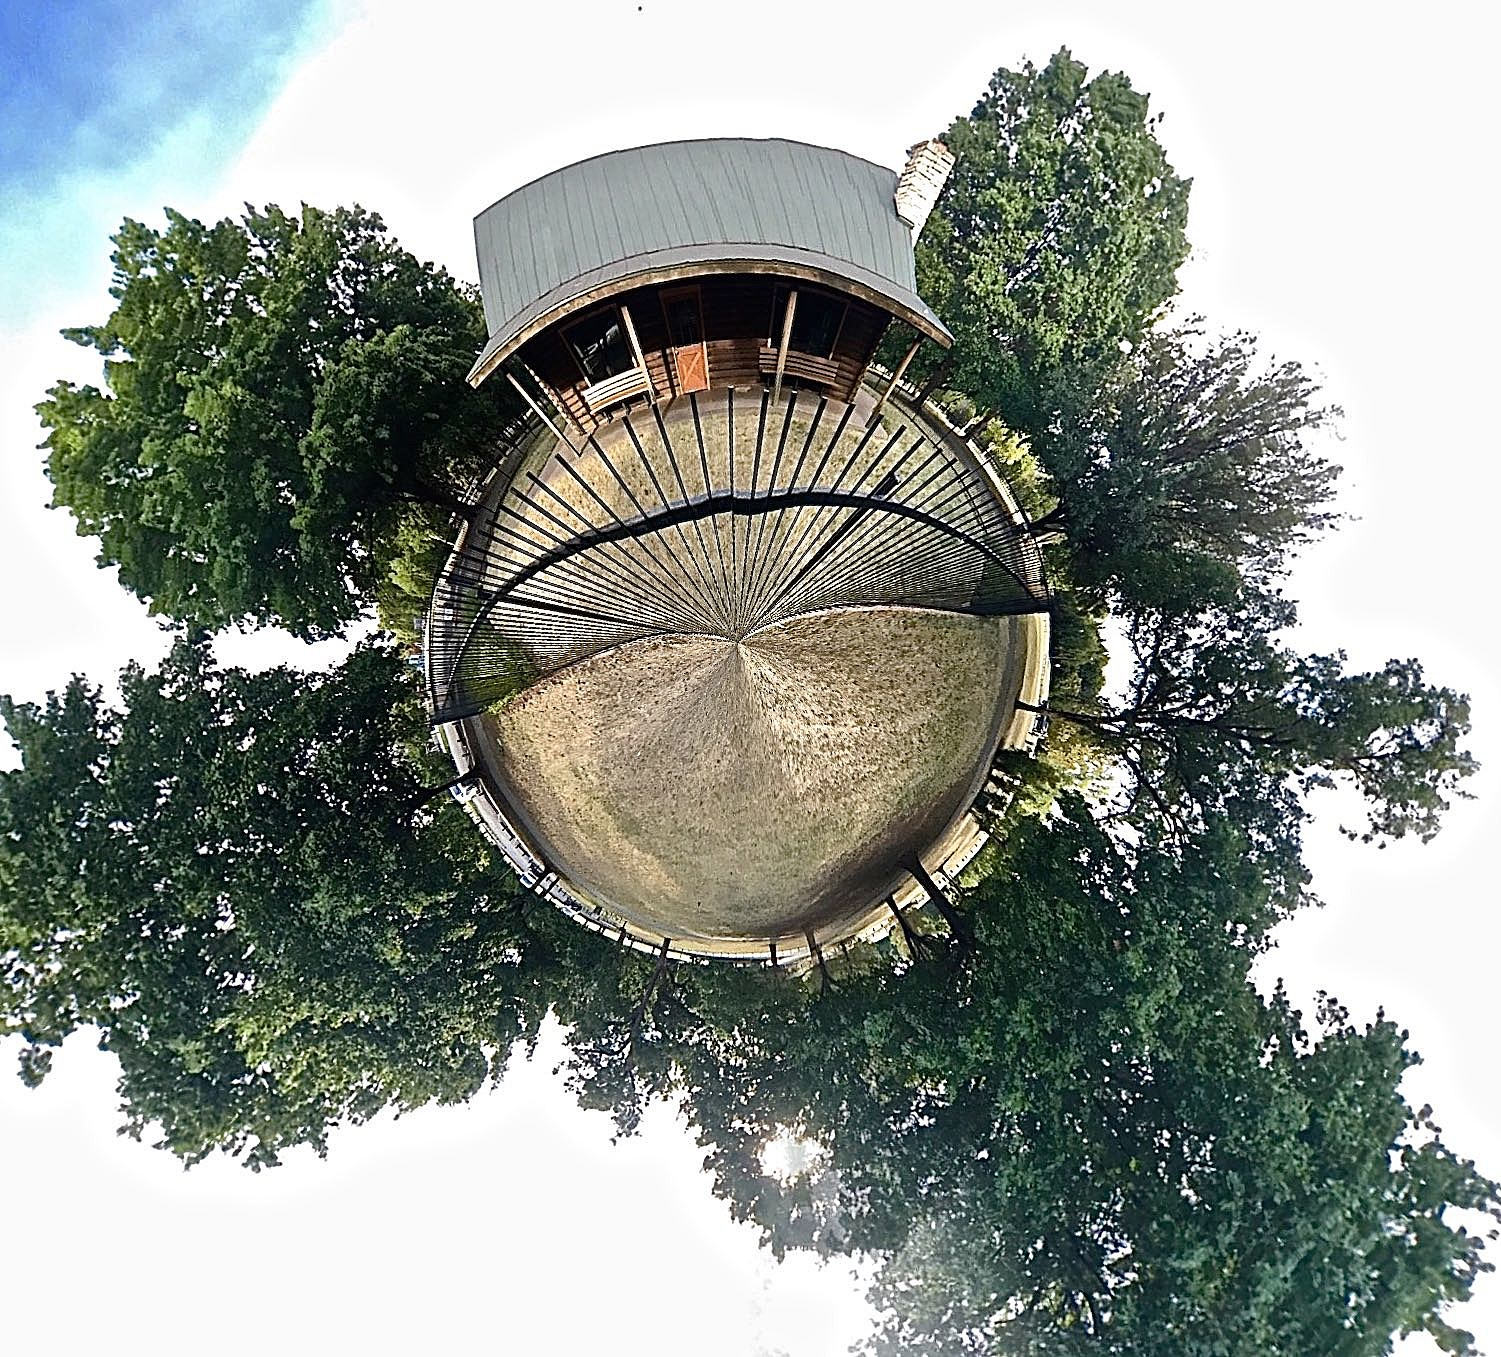 Lucy Park Log Cabin - Tiny Planet